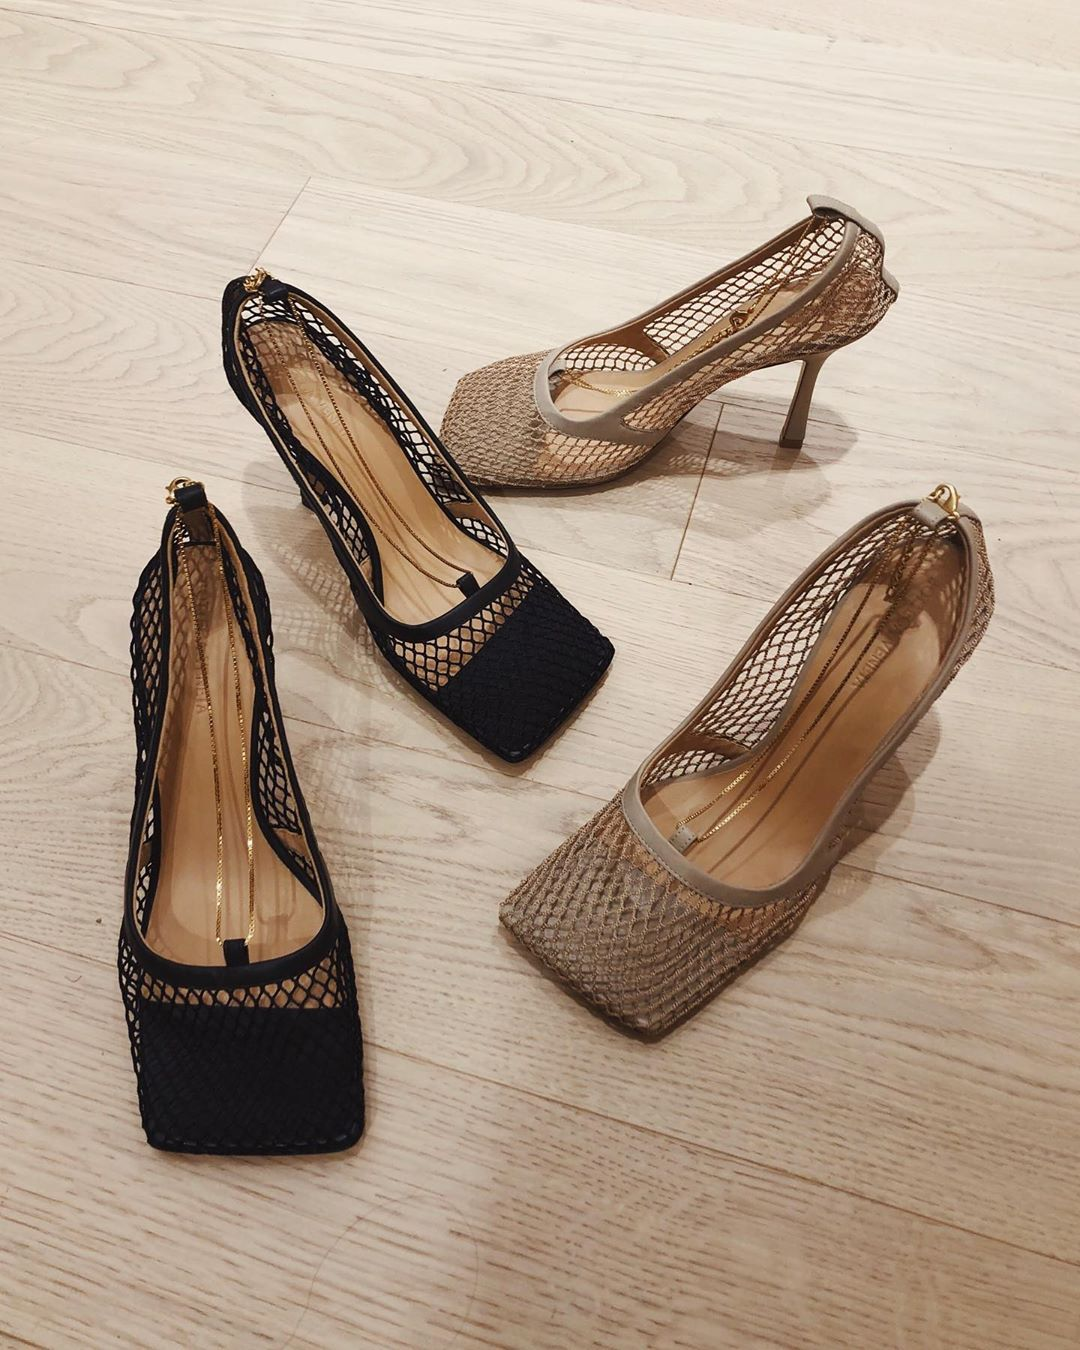 trine-kjaer-bottega-veneta-stretch-pumps-mesh-calfskin-instagram